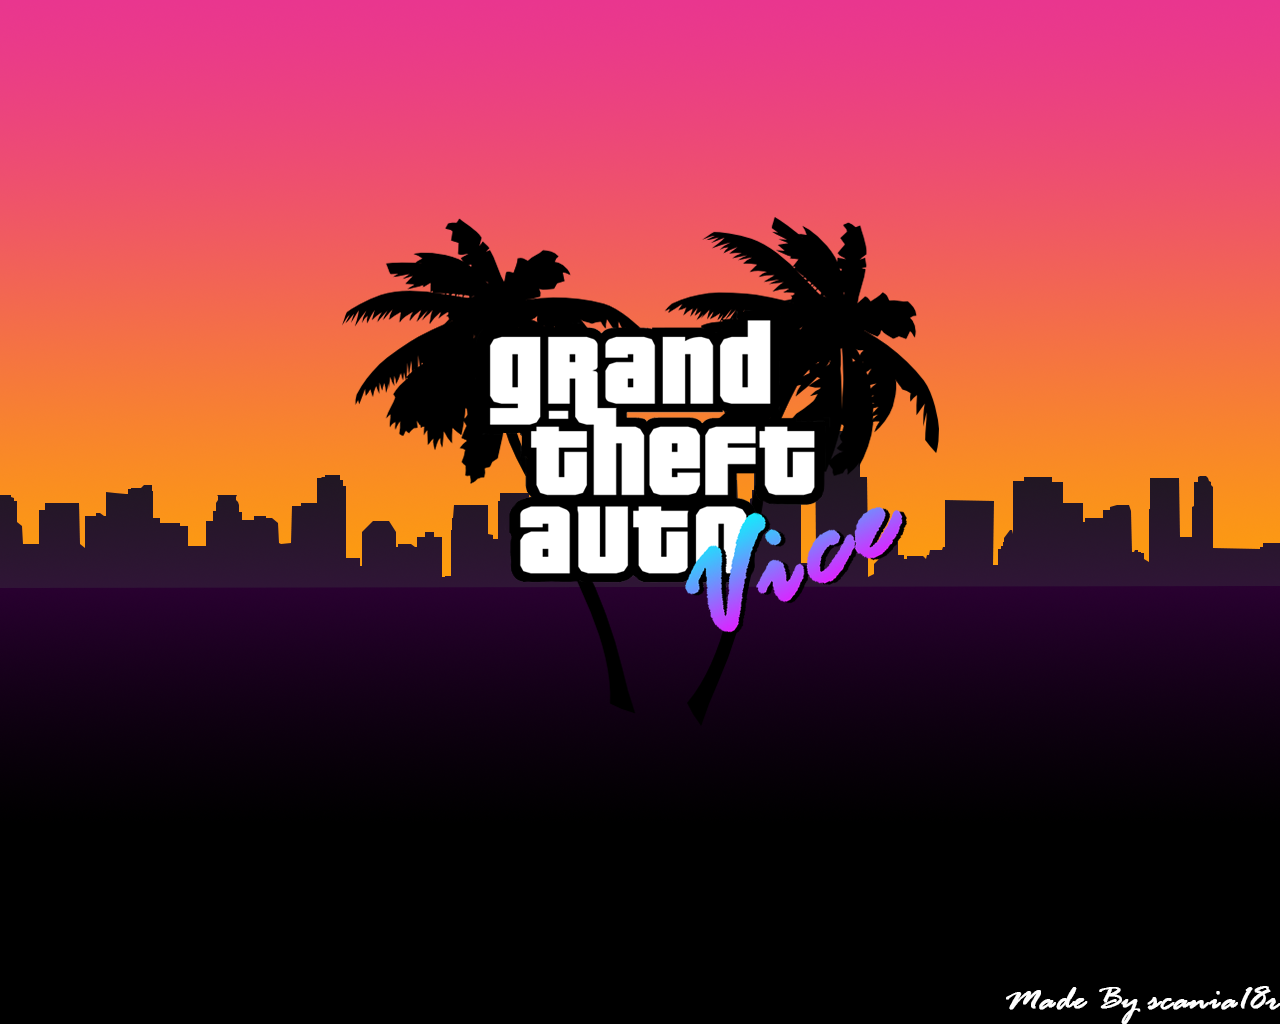 Grand Theft Auto Vice City Wallpapers Top Free Grand Theft Auto